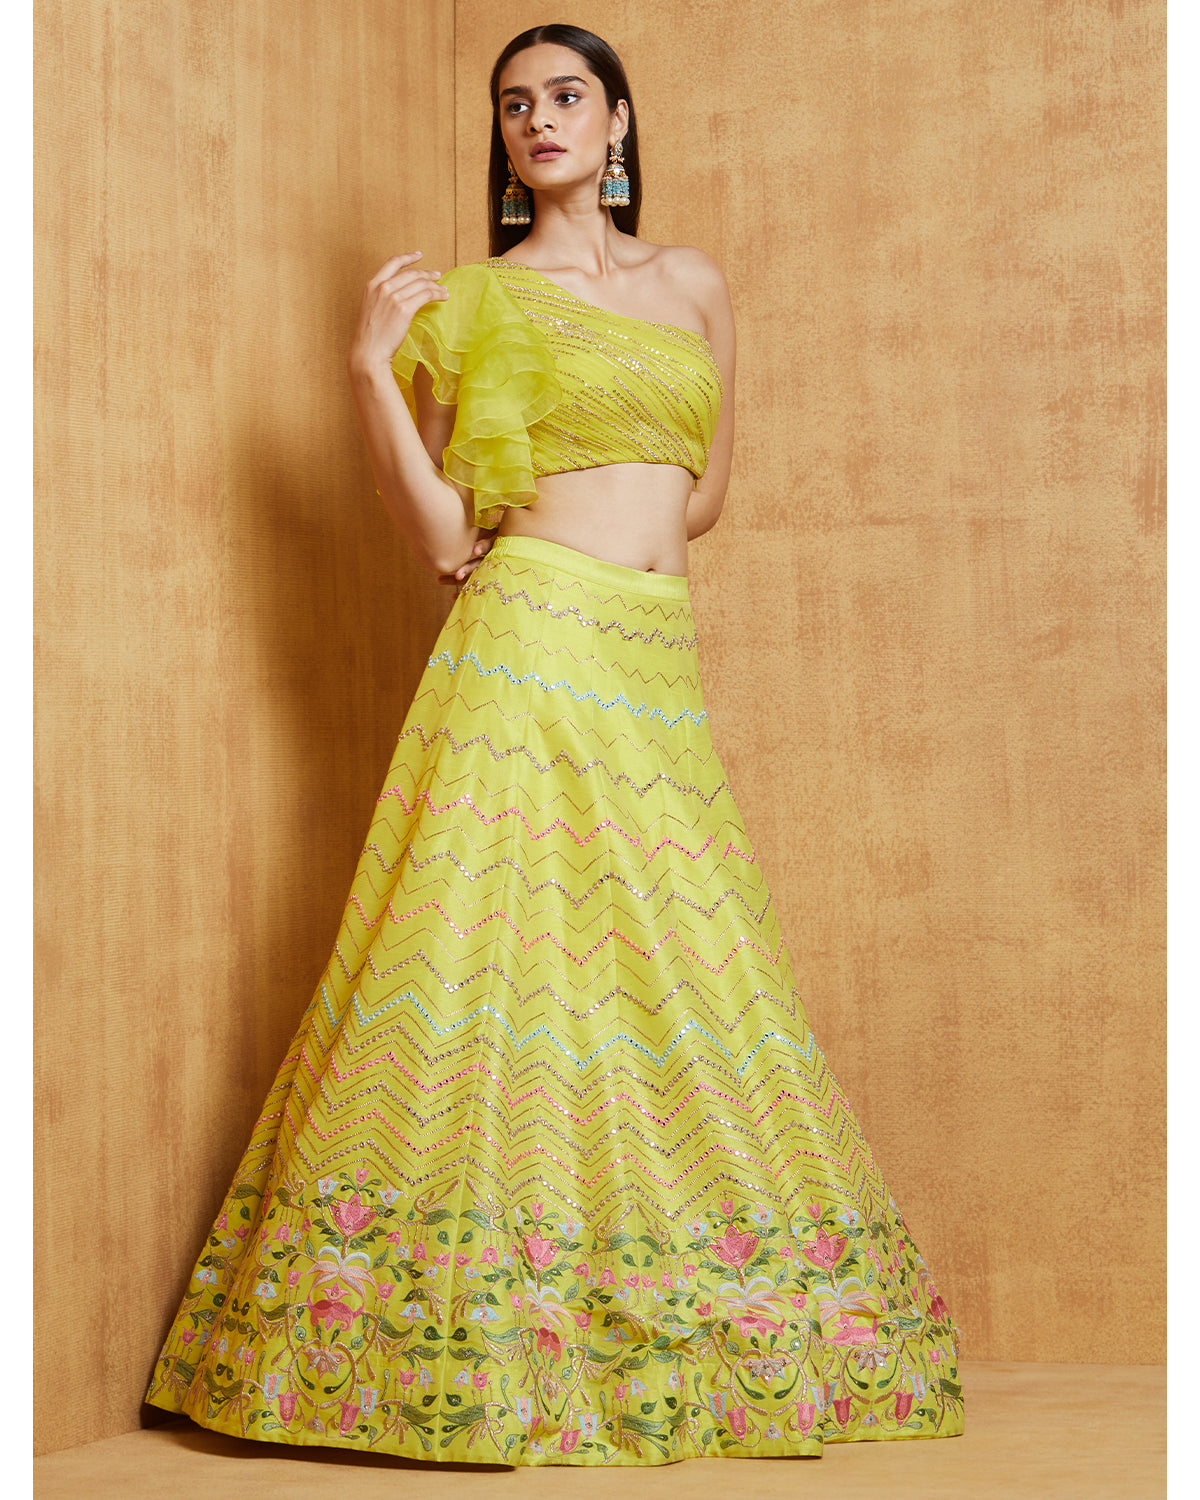 Noorjha with Tulips Lehenga